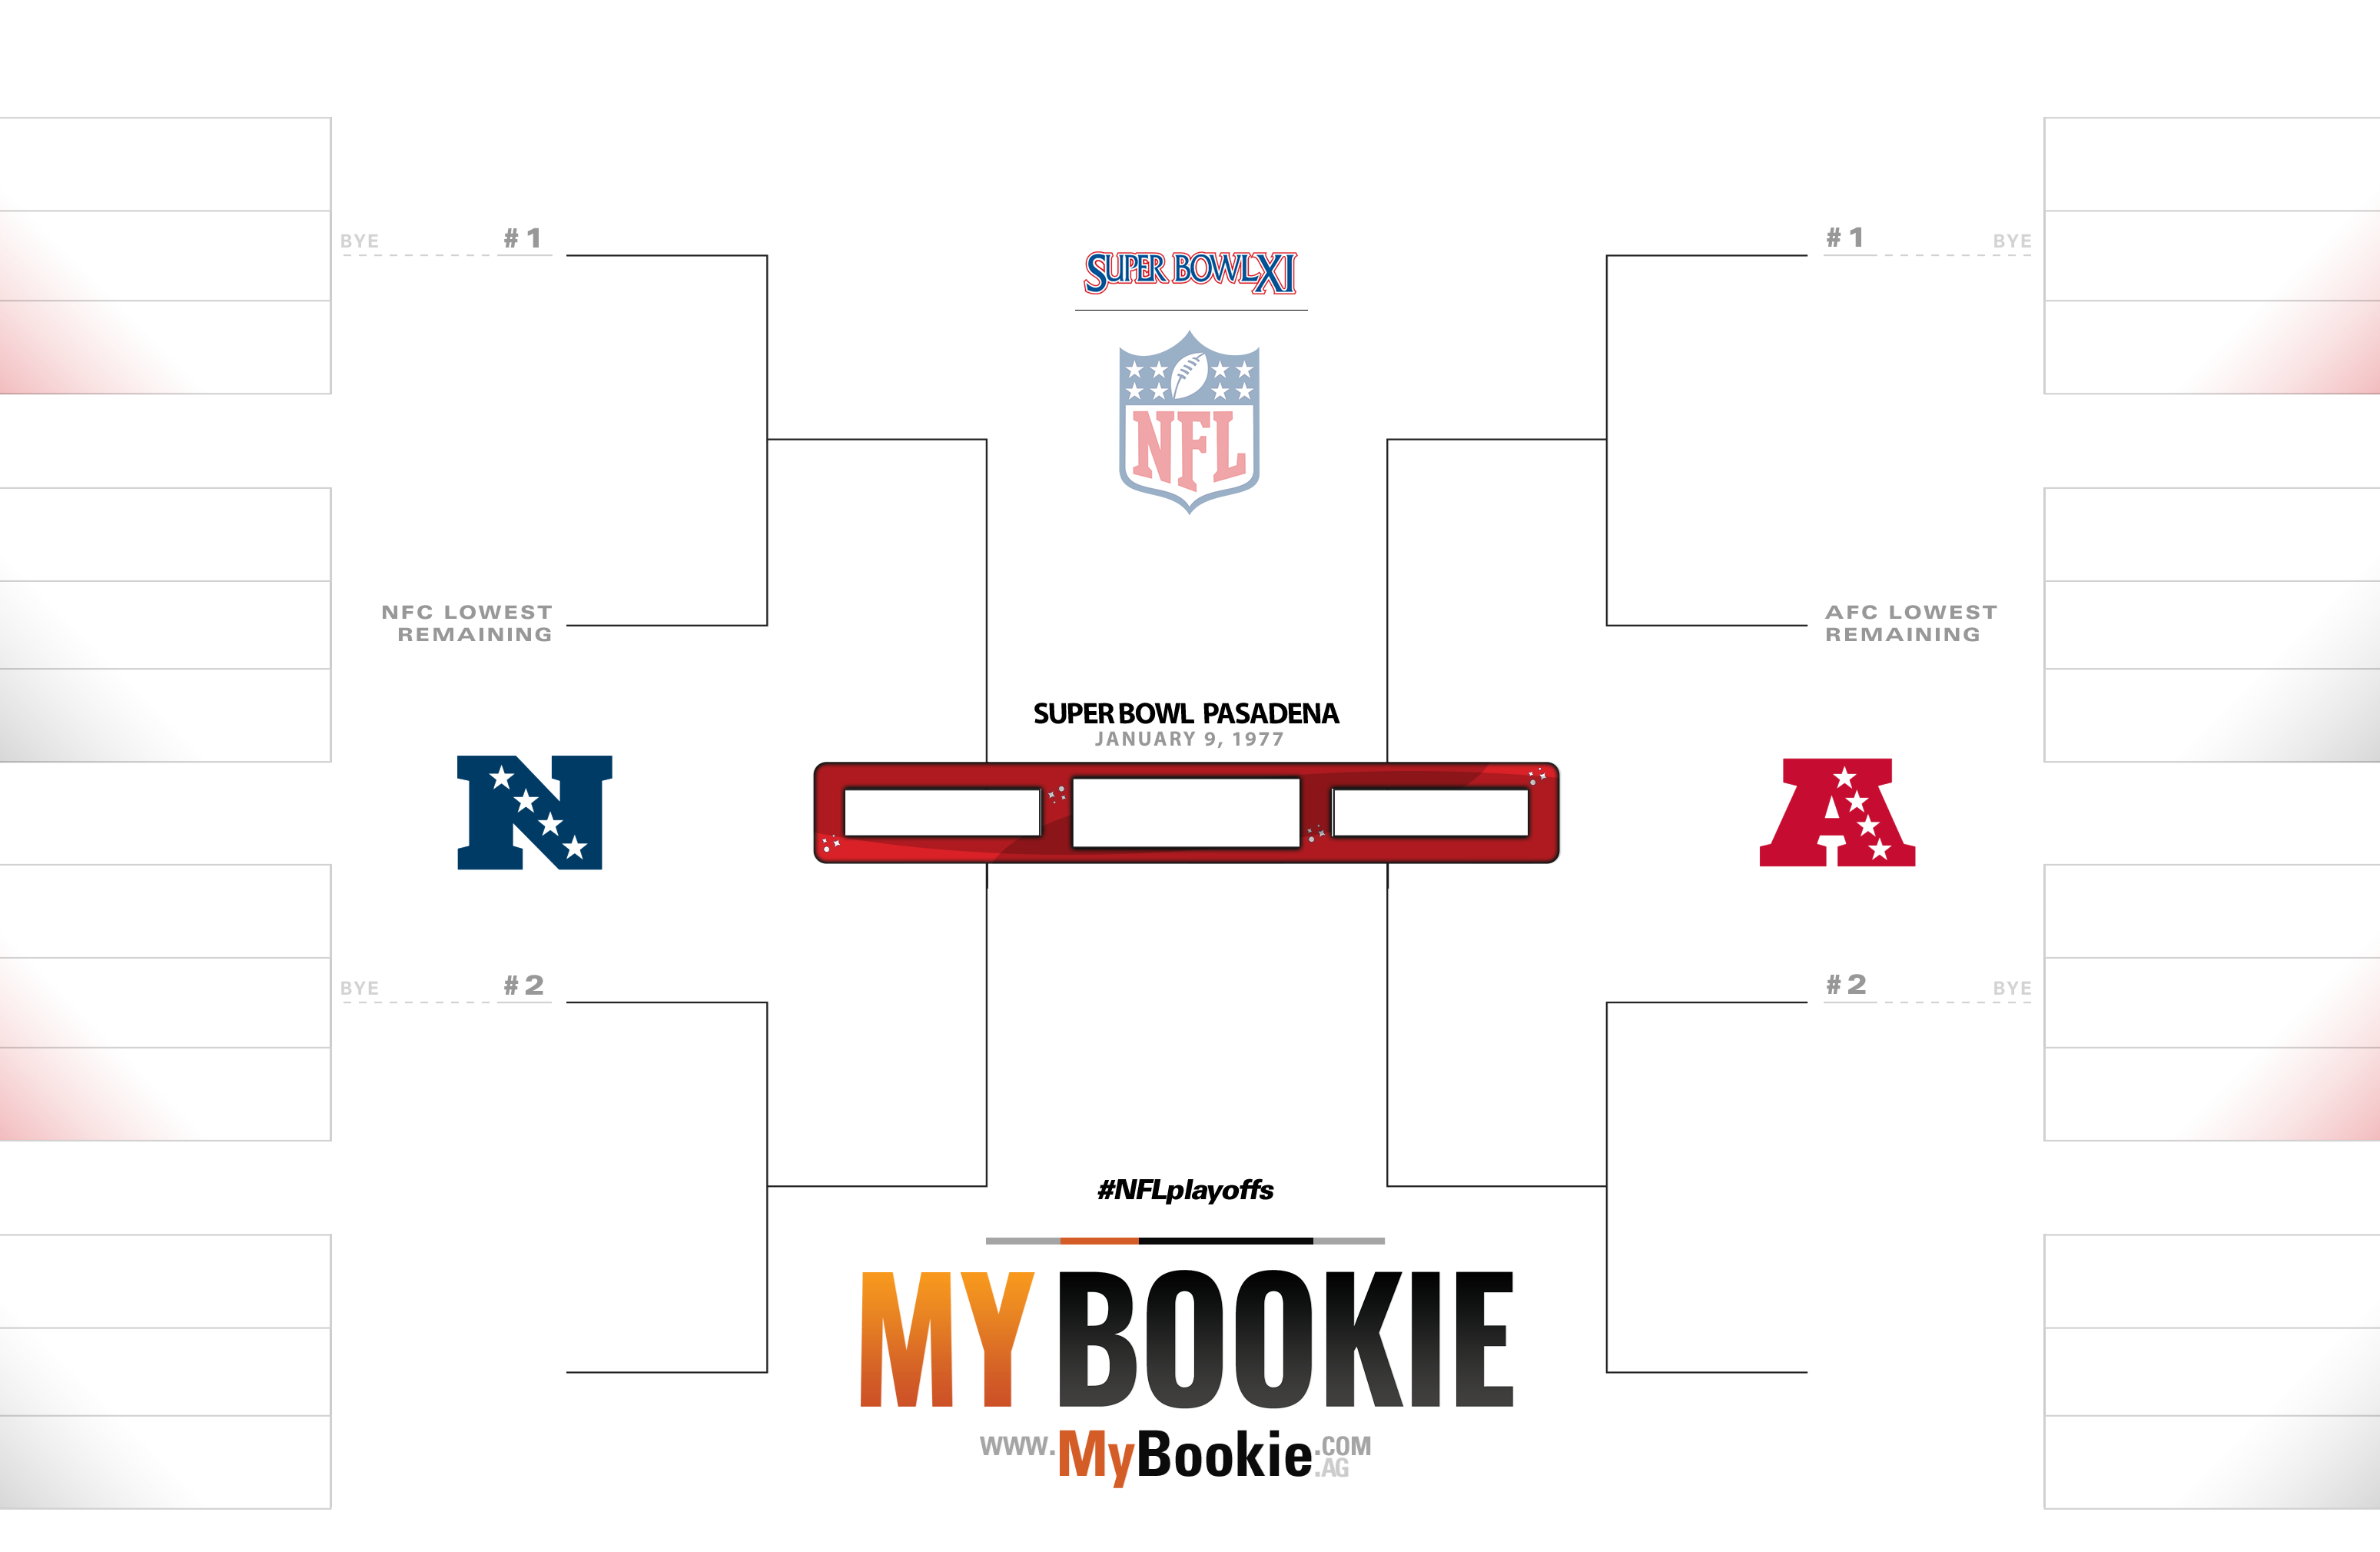 NFL Playoffs / Superbowl 1977 Printable Bracket